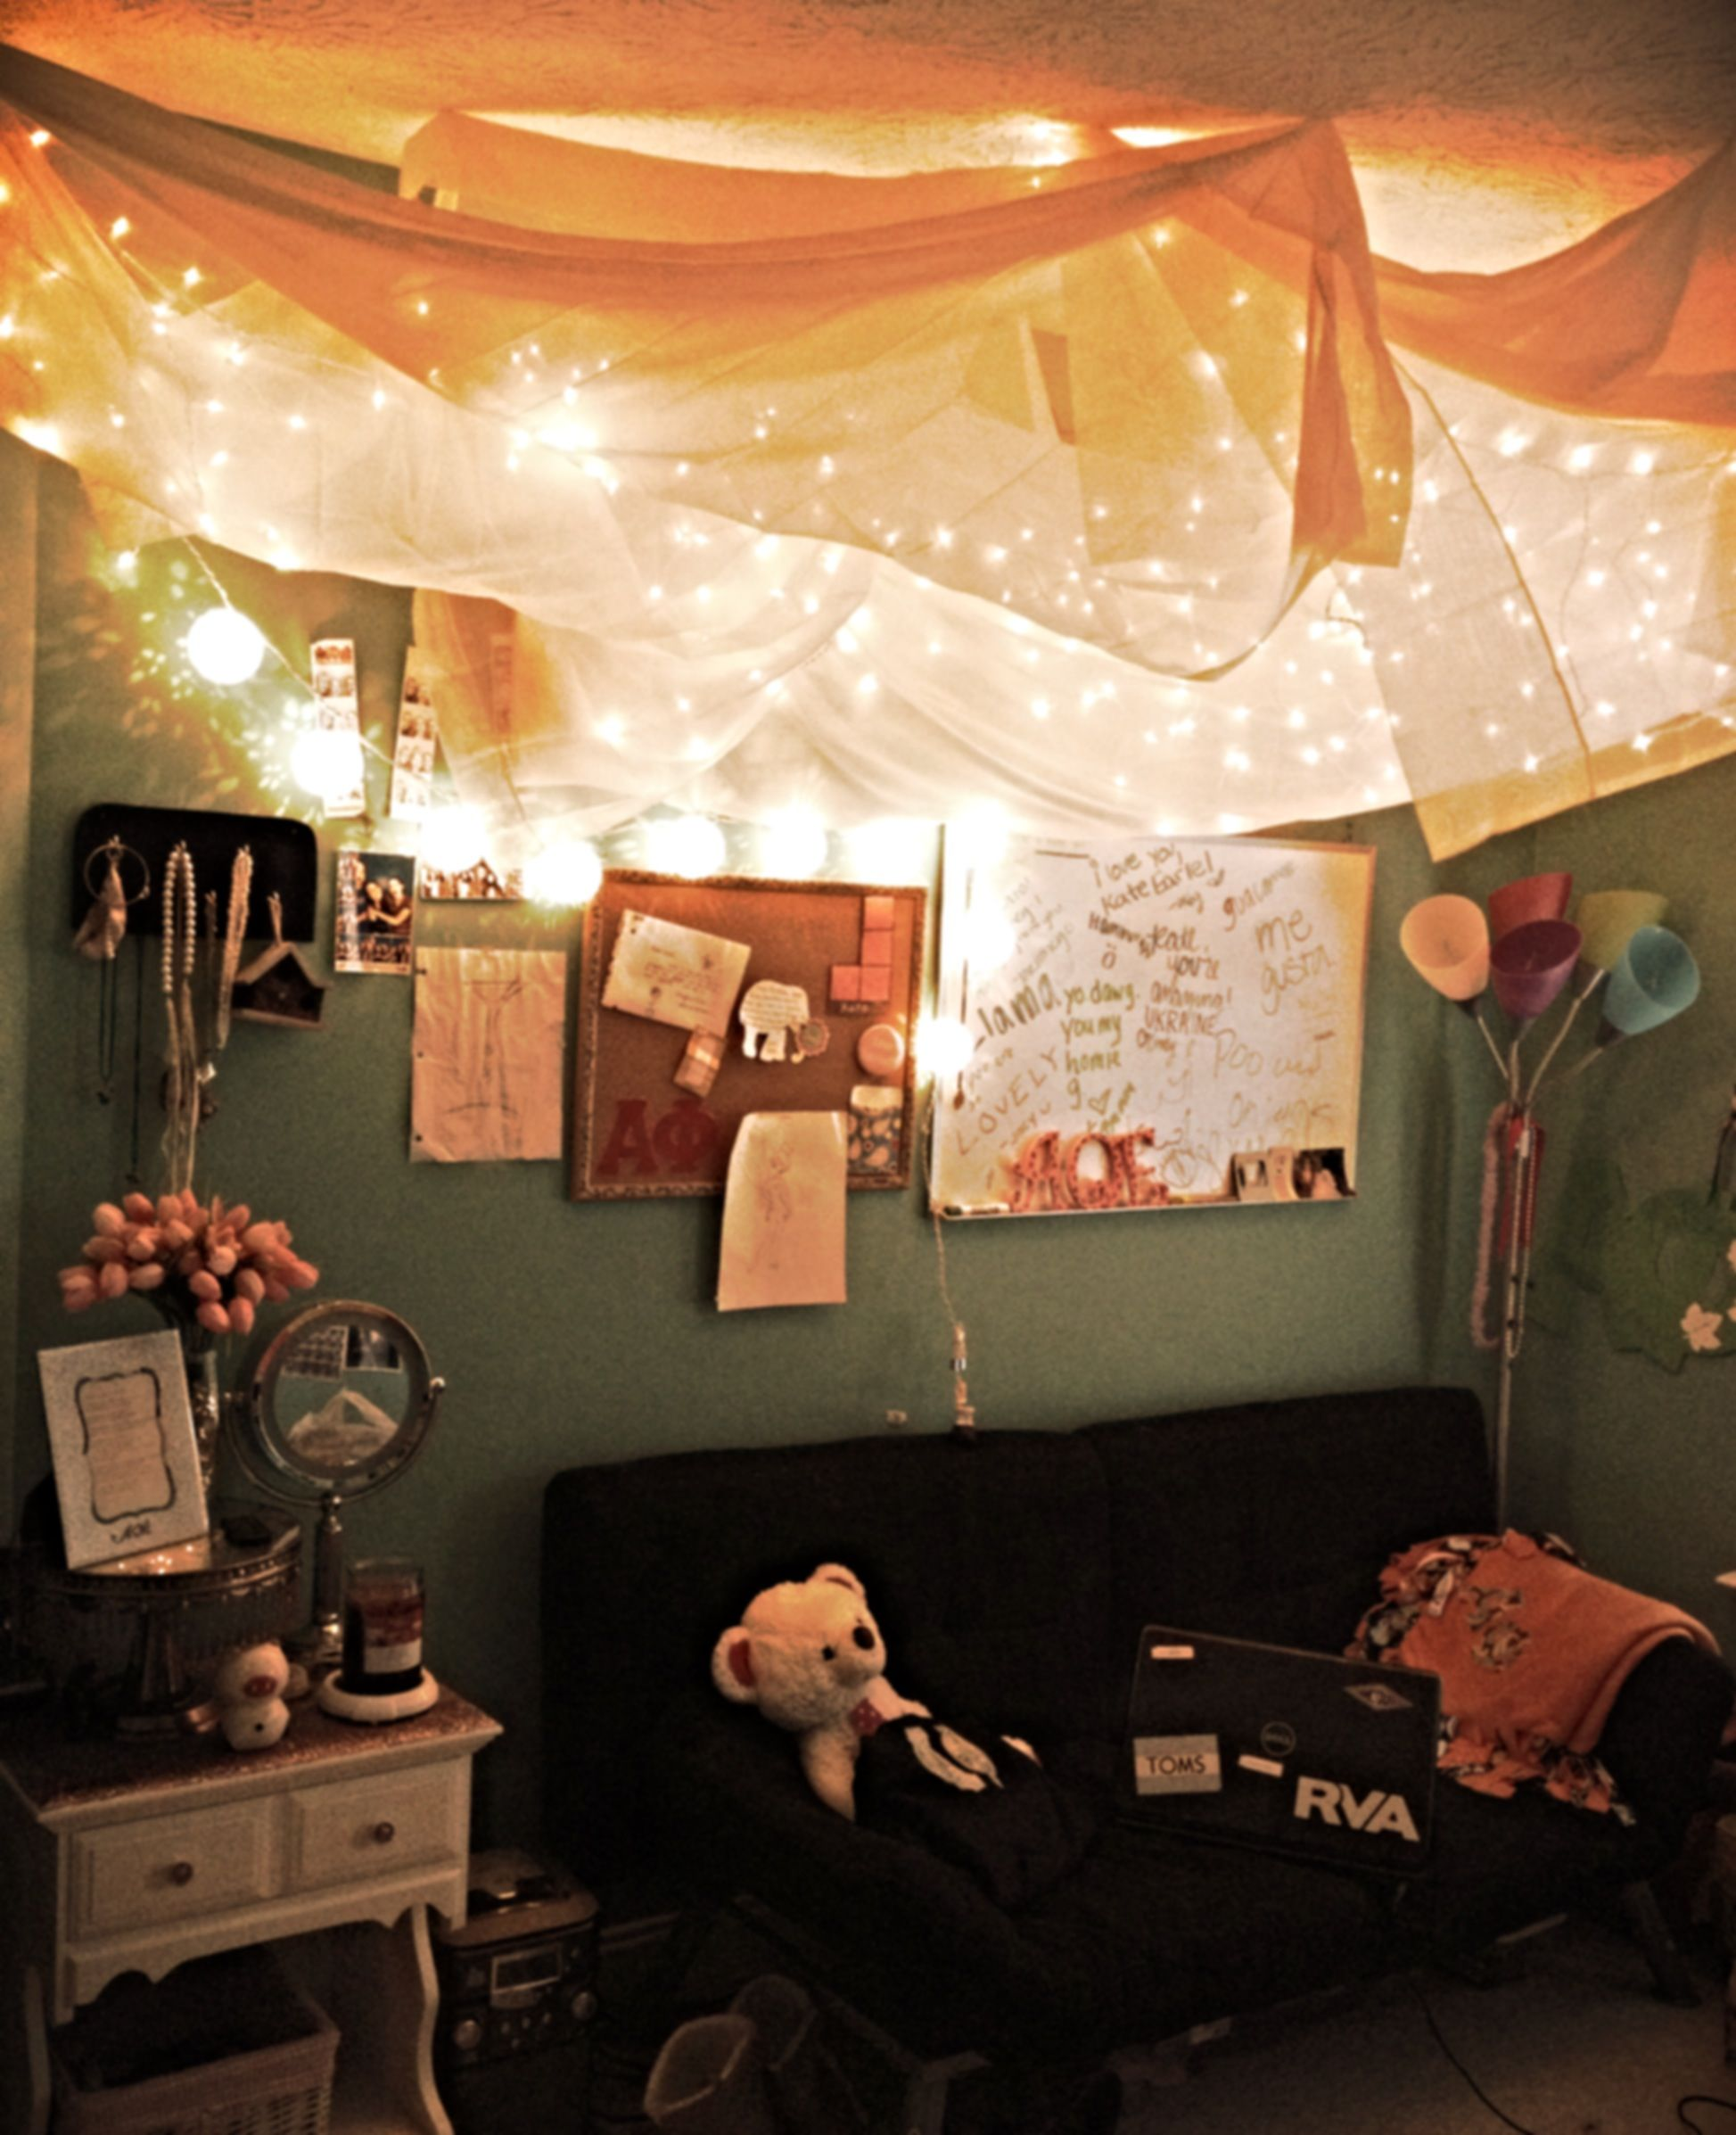 Decorative lights for dorm room - Find This Pin And More On Room Decor